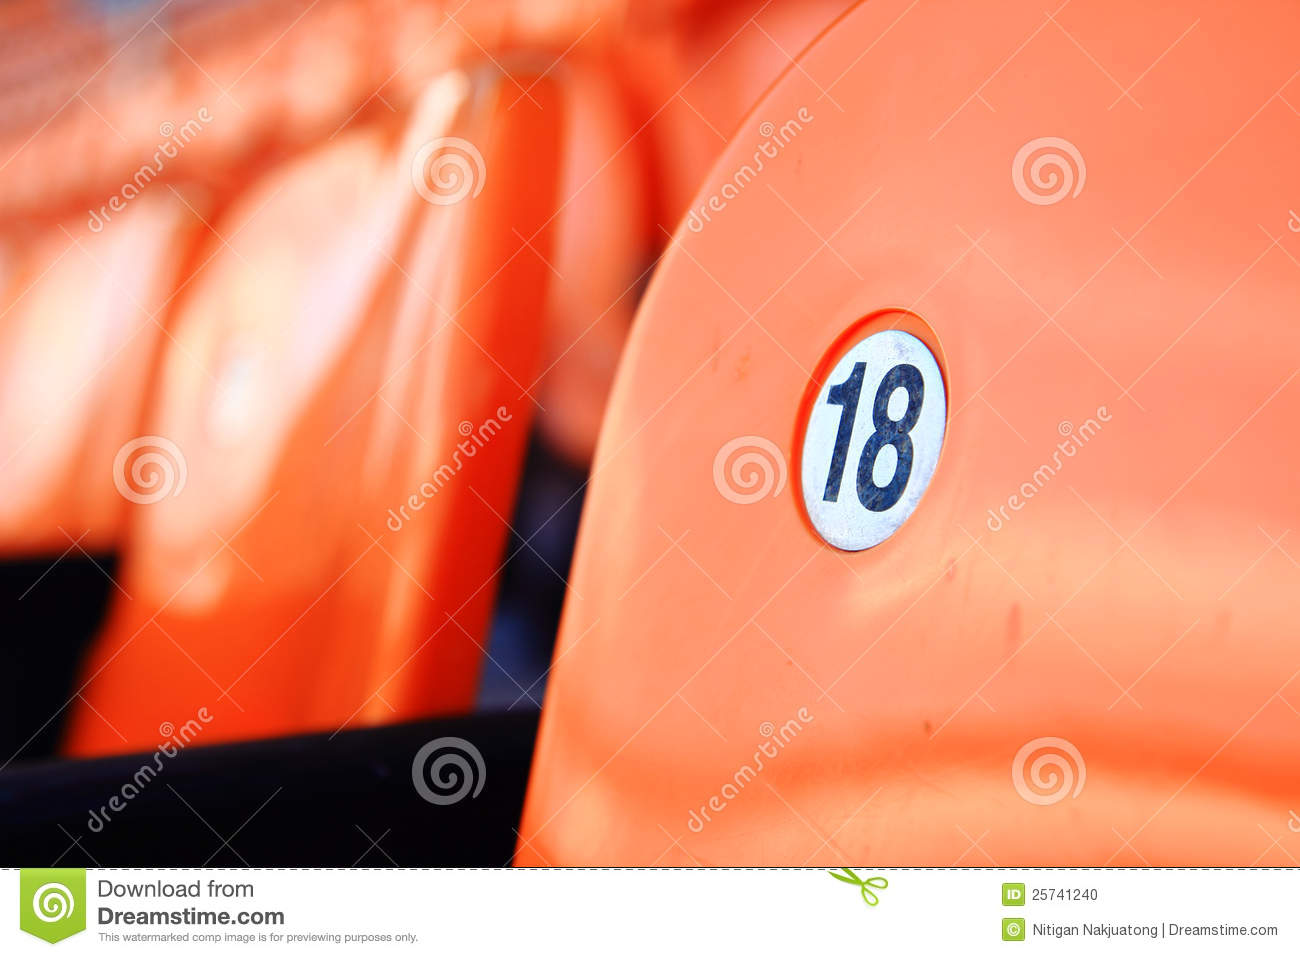 Orange Seat Number 18 Stock Photo Image Of Hockey